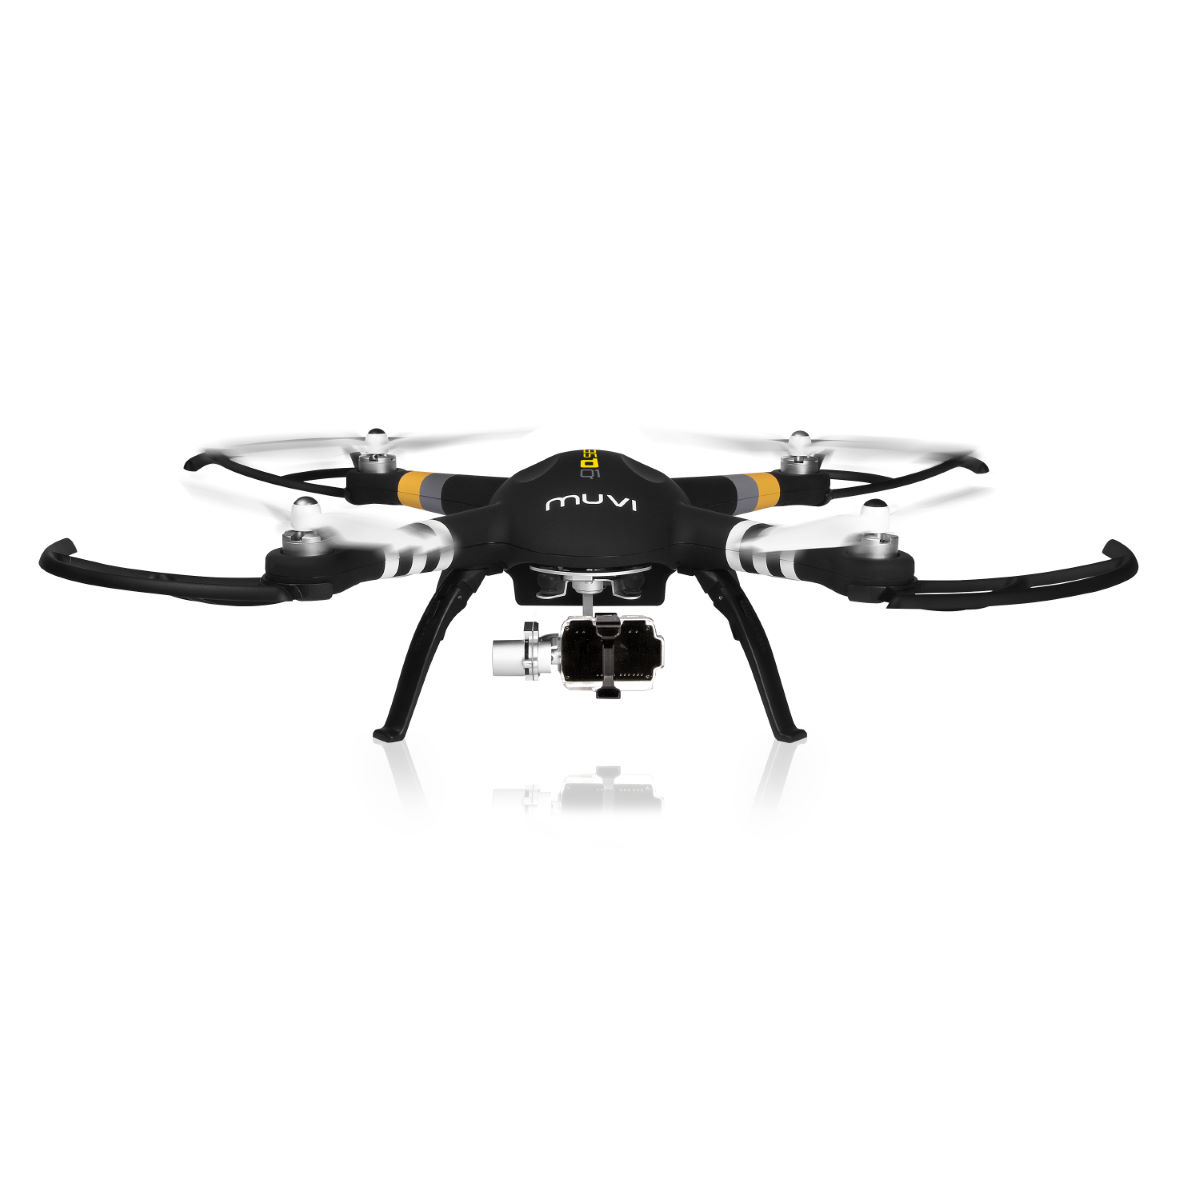 Veho Muvi Drone with 3D Gimbal & Follow Me - Drones